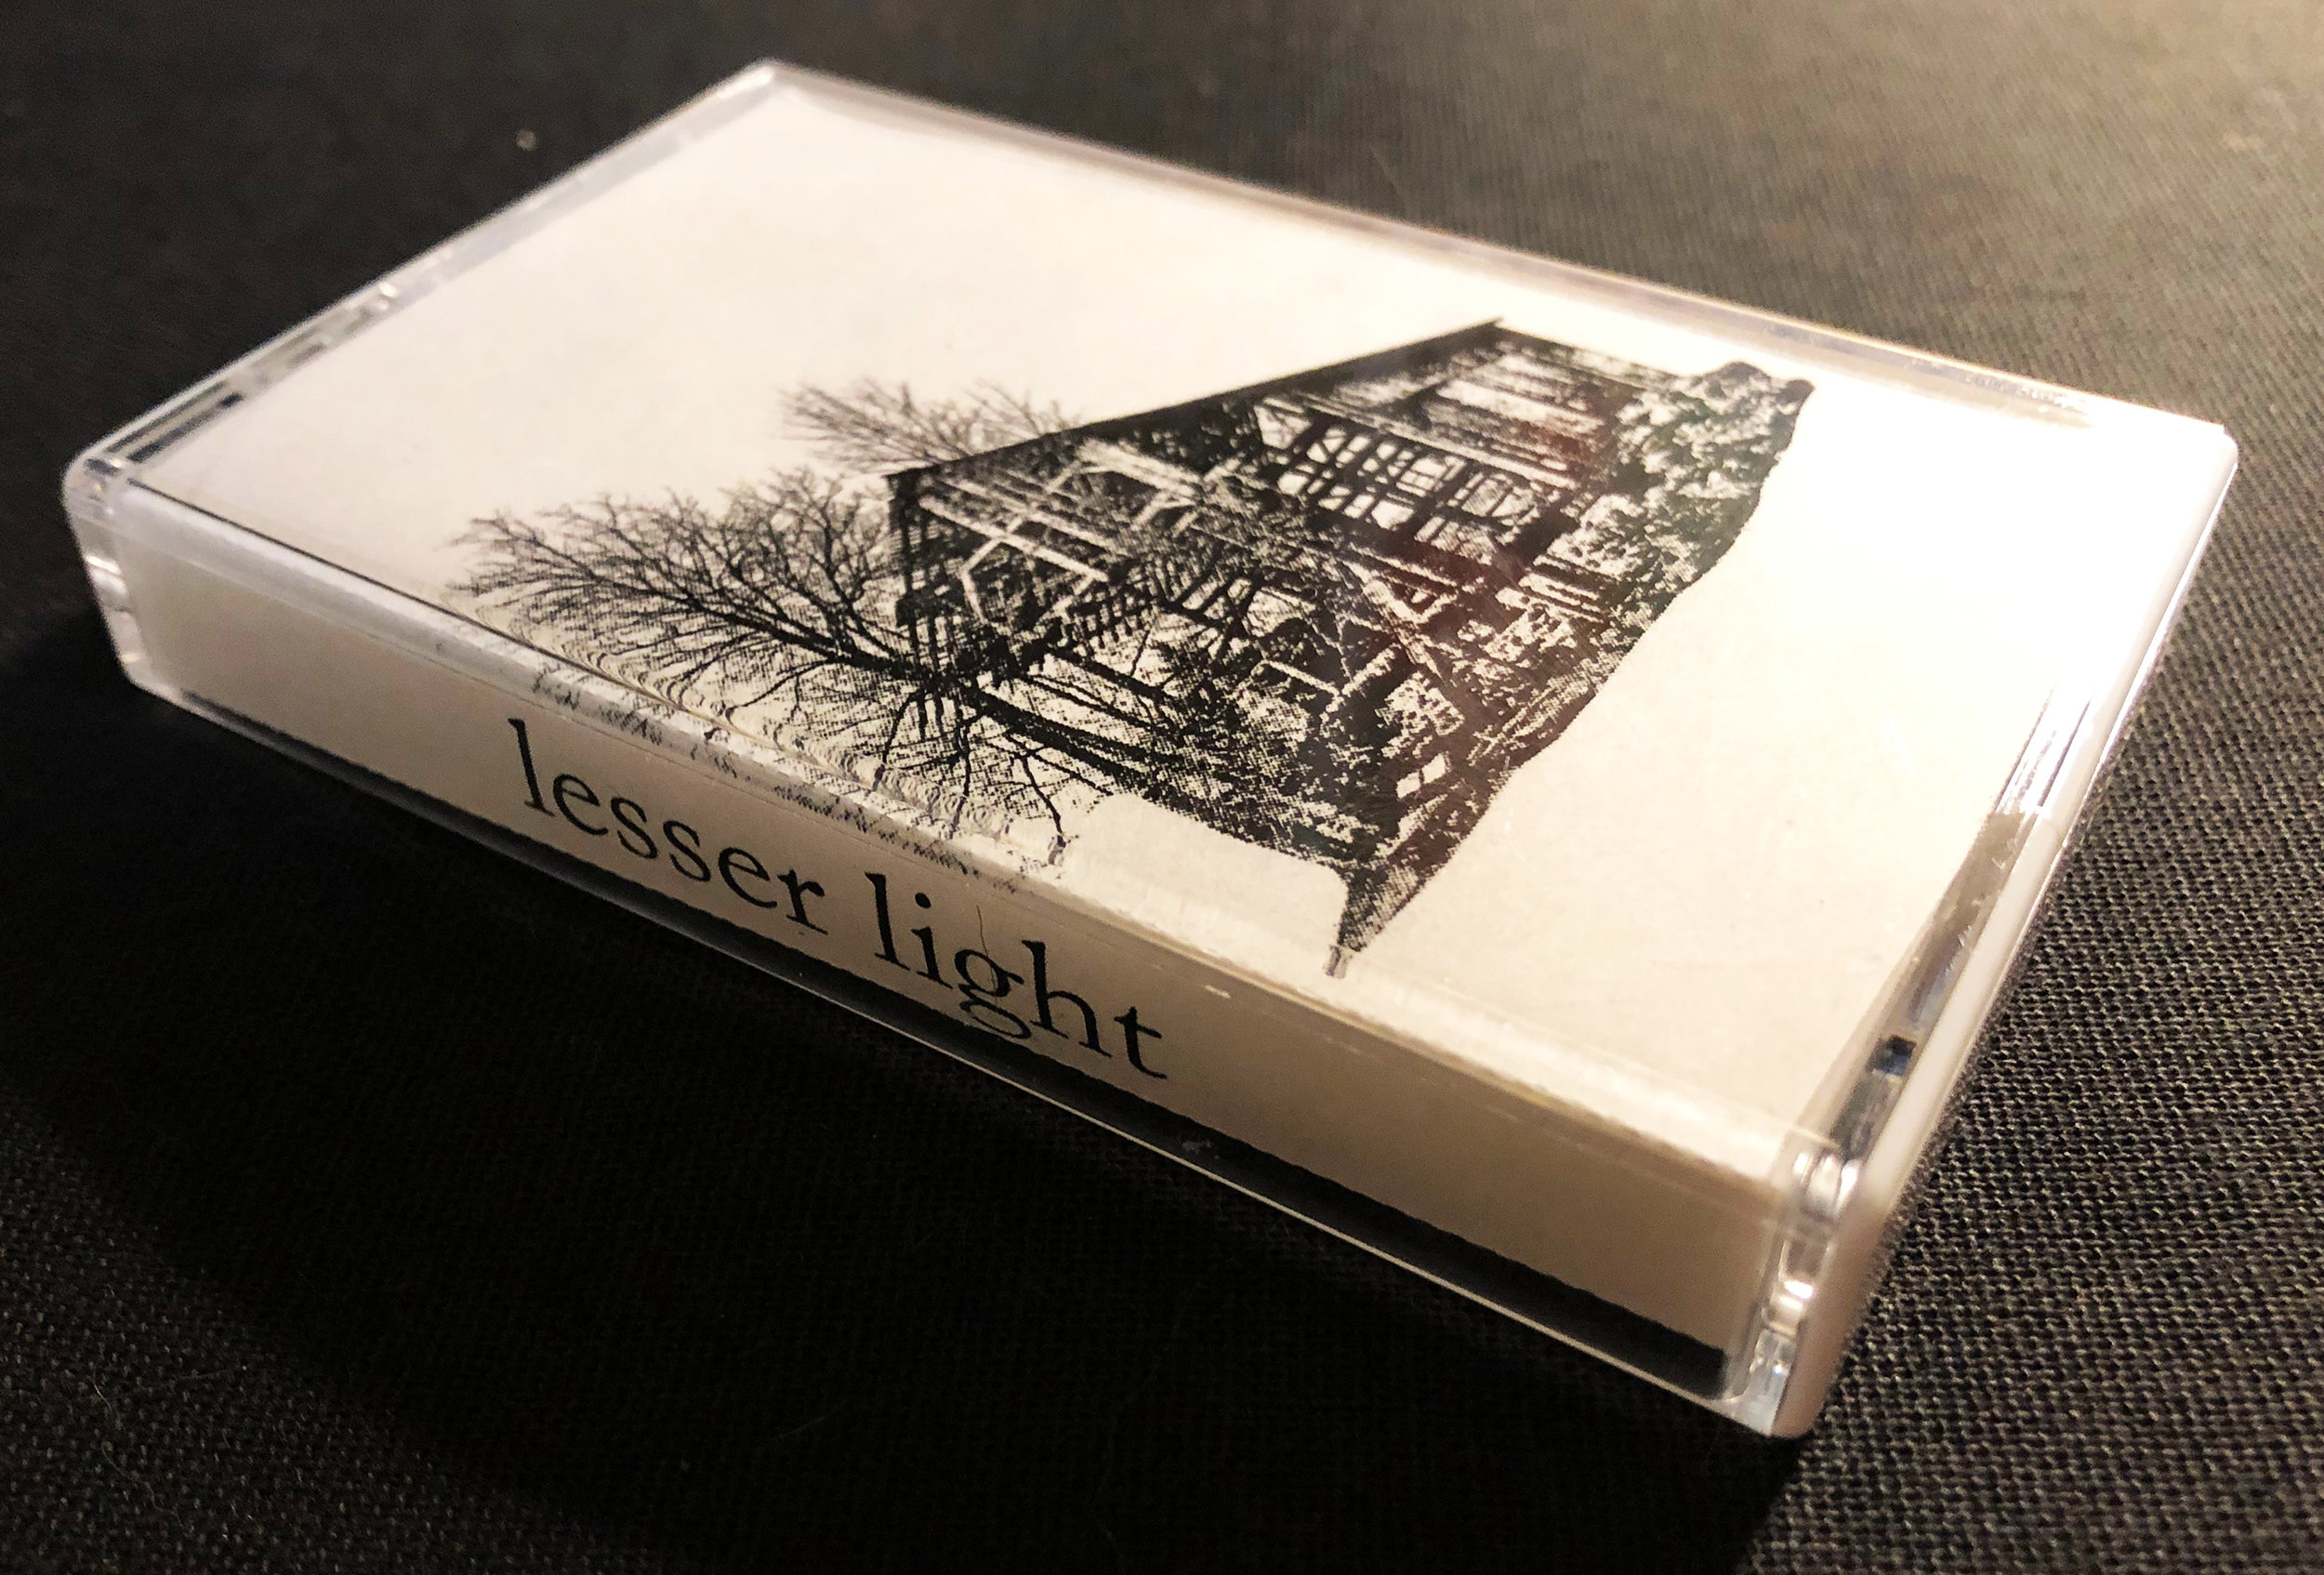 Lesser Light - Demo 2018